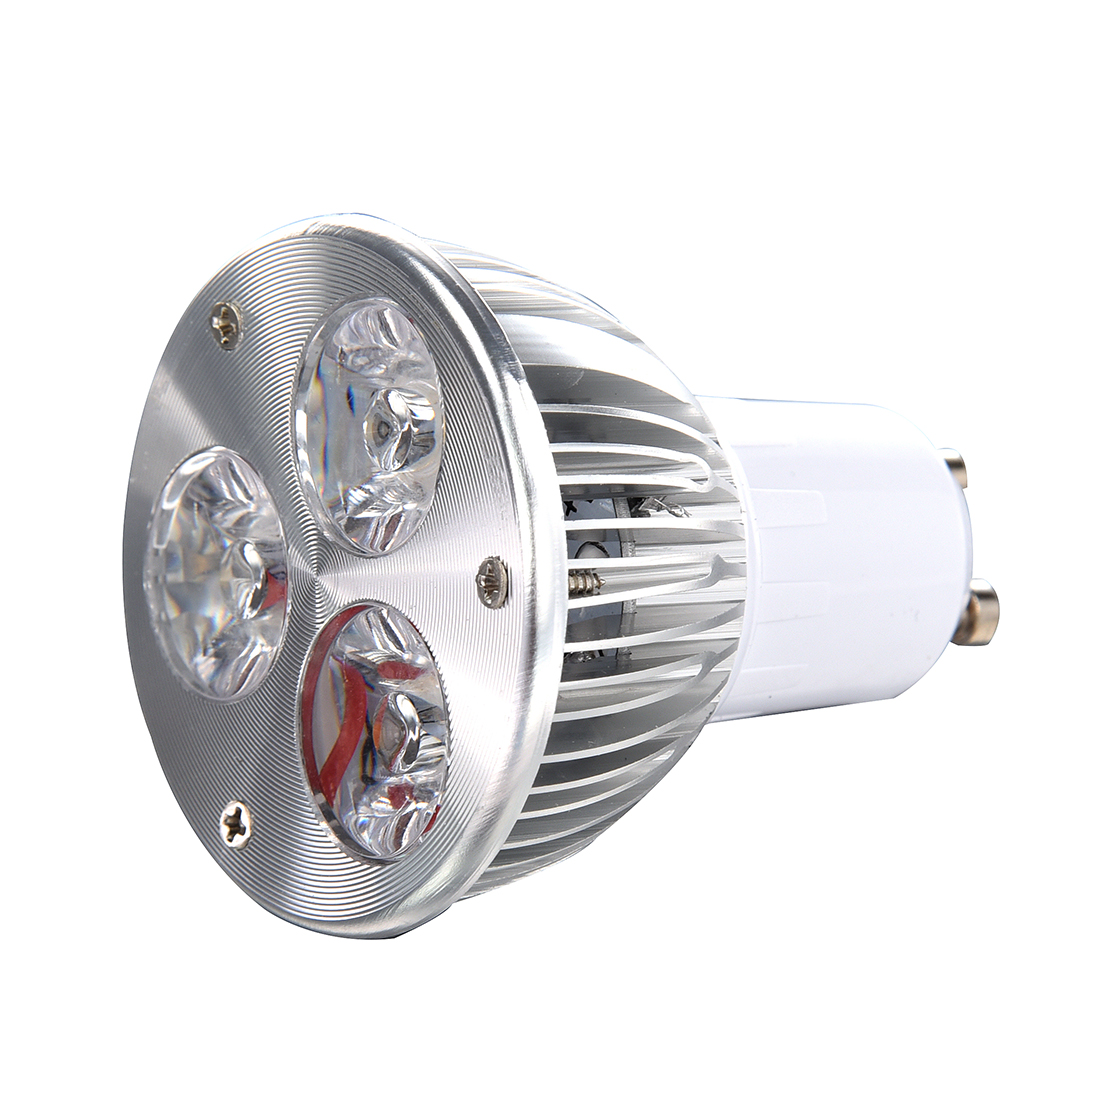 GU10 3W 3 LED high power spot light bulb lamp light DC 12V Warm White